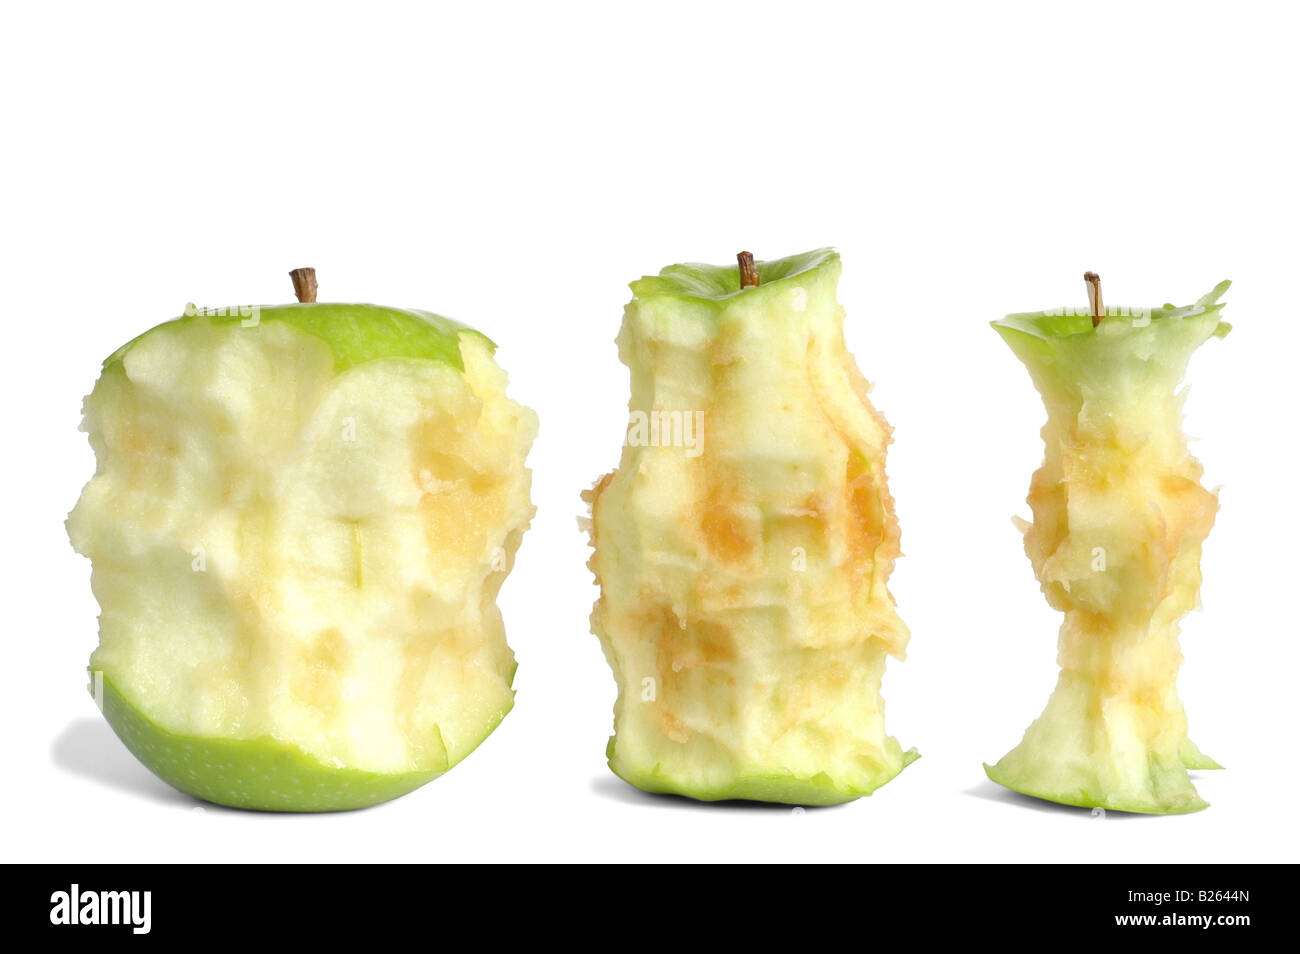 Apple Cores - Stock Image